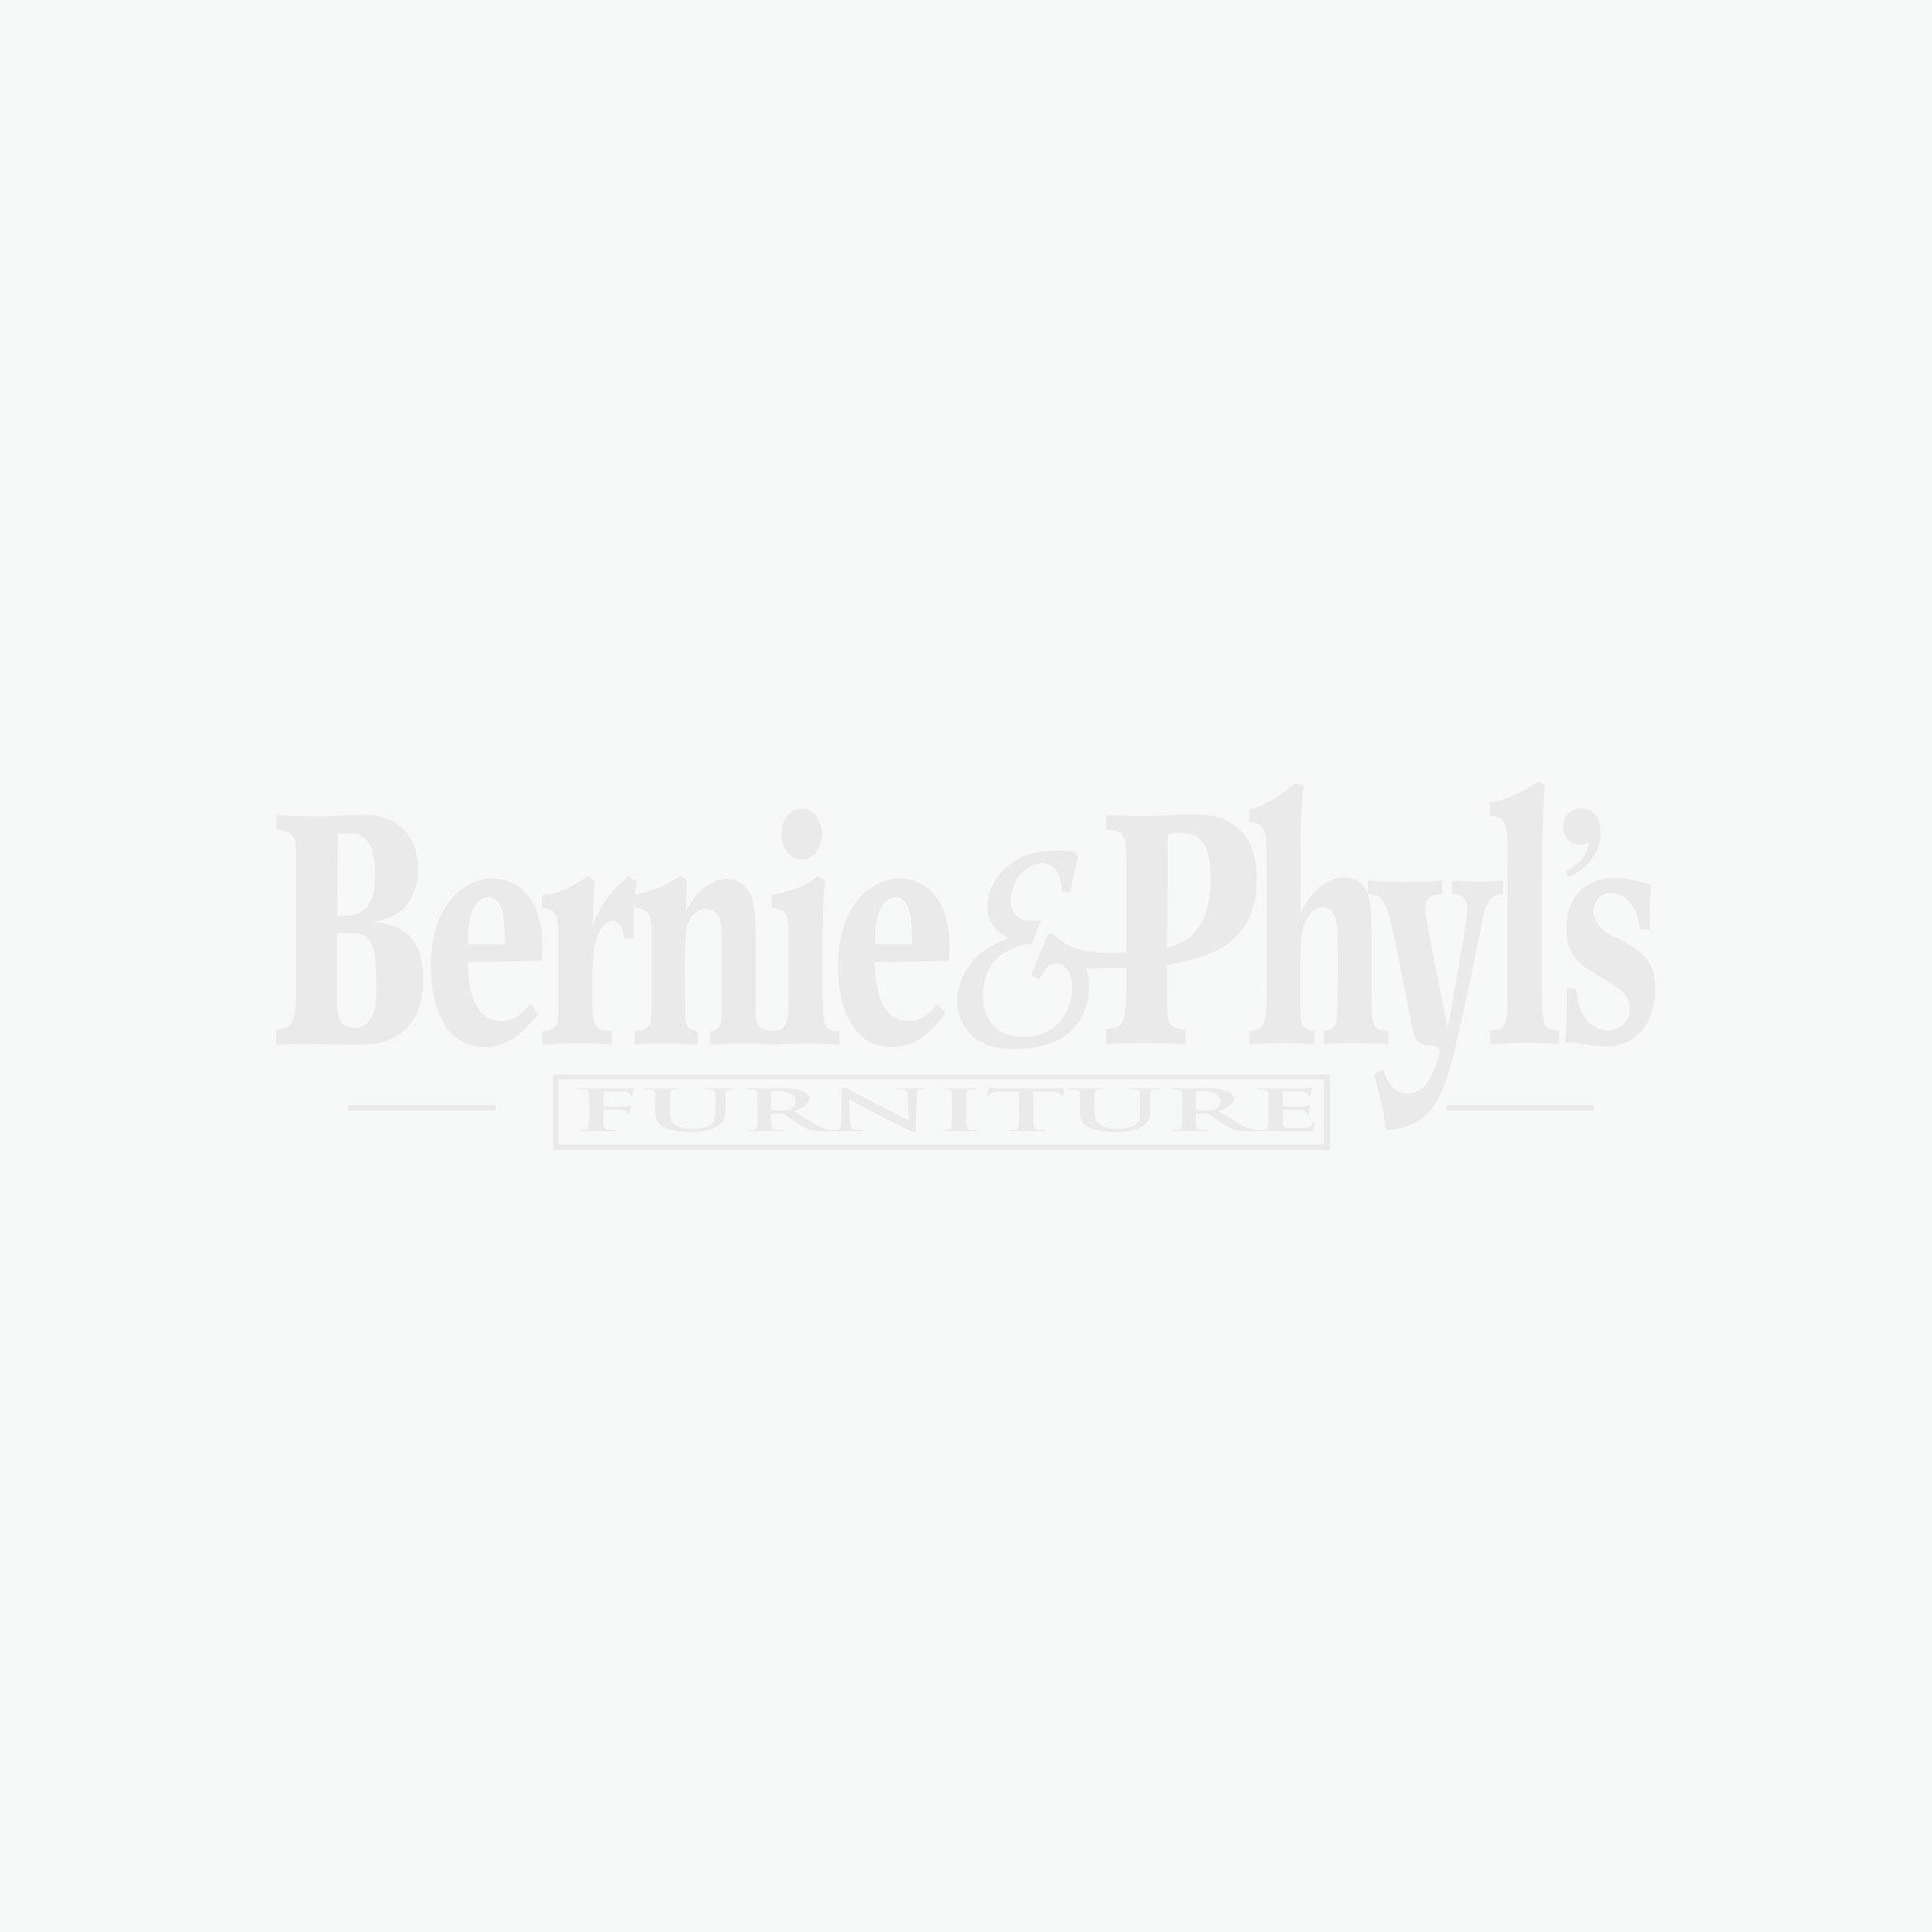 Tampa Sofa Bernie Phyl S Furniture